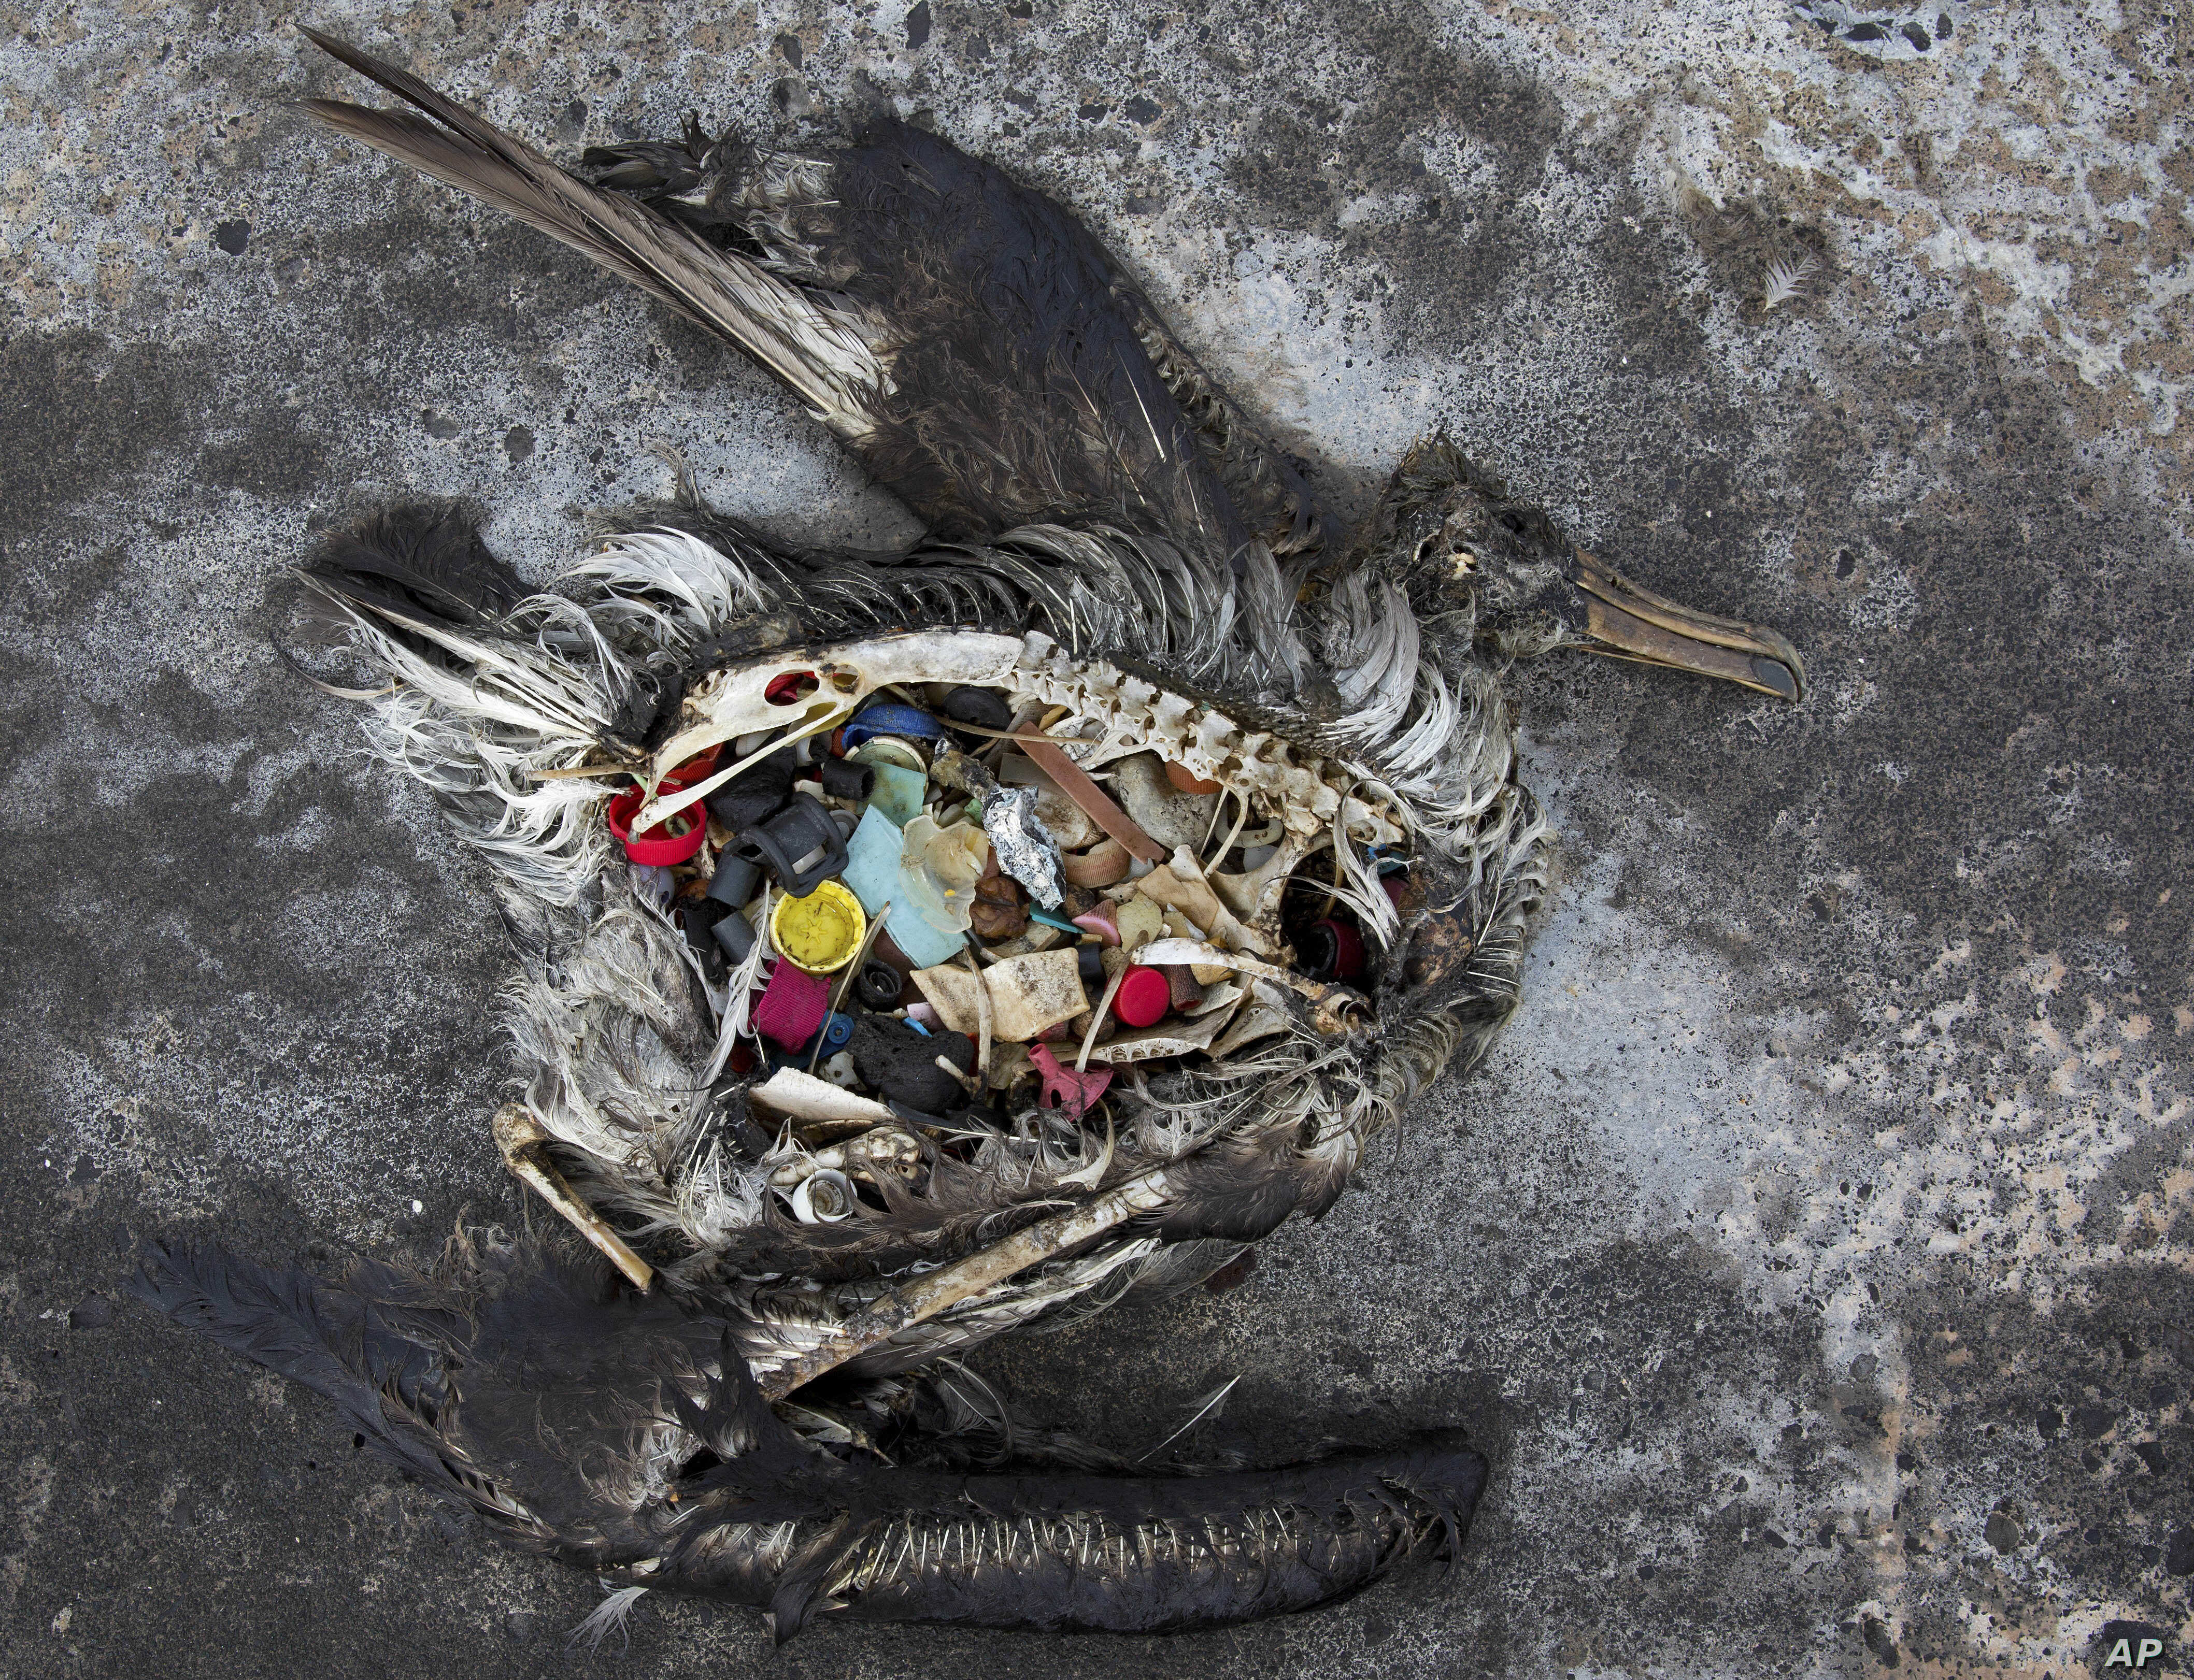 FILE - A black footed albatross chick with plastics in its stomach lies dead on Midway Atoll in the Northwestern Hawaiian Islands in this Nov. 2, 2014, photo provided by the U.S. Fish and Wildlife Service. The remote atoll is now a delicate sanctuary...